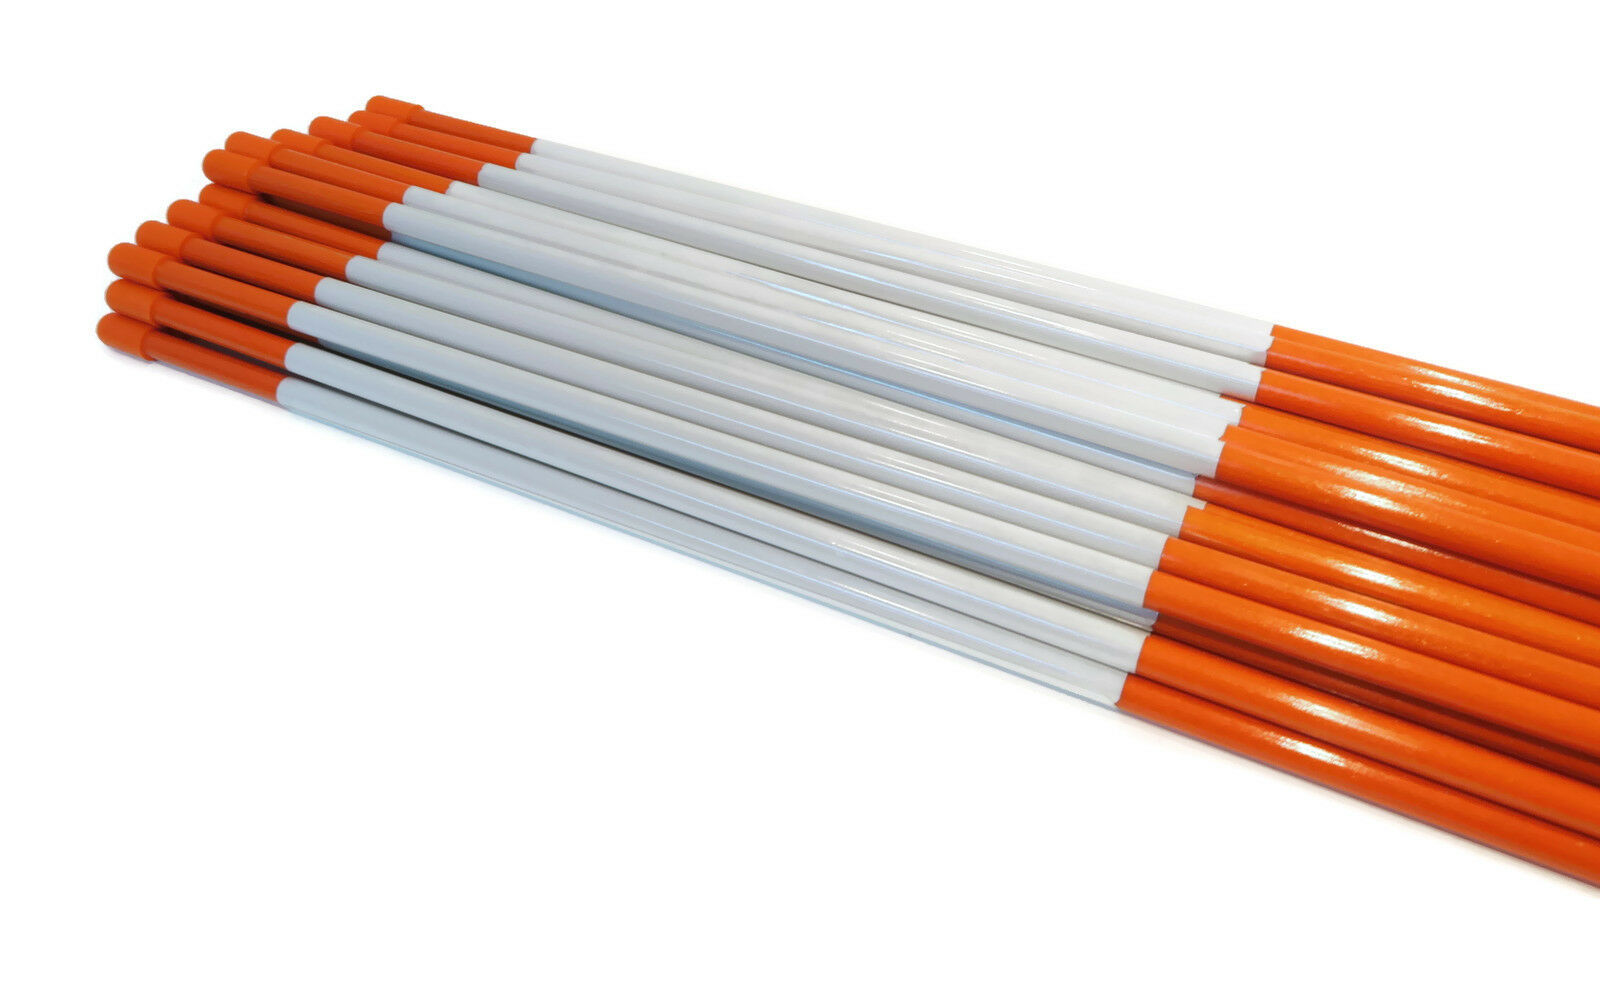 Pack of 200 Pathway Sticks 48 inches Fiberglass with Reflective Tape 1//4 inch